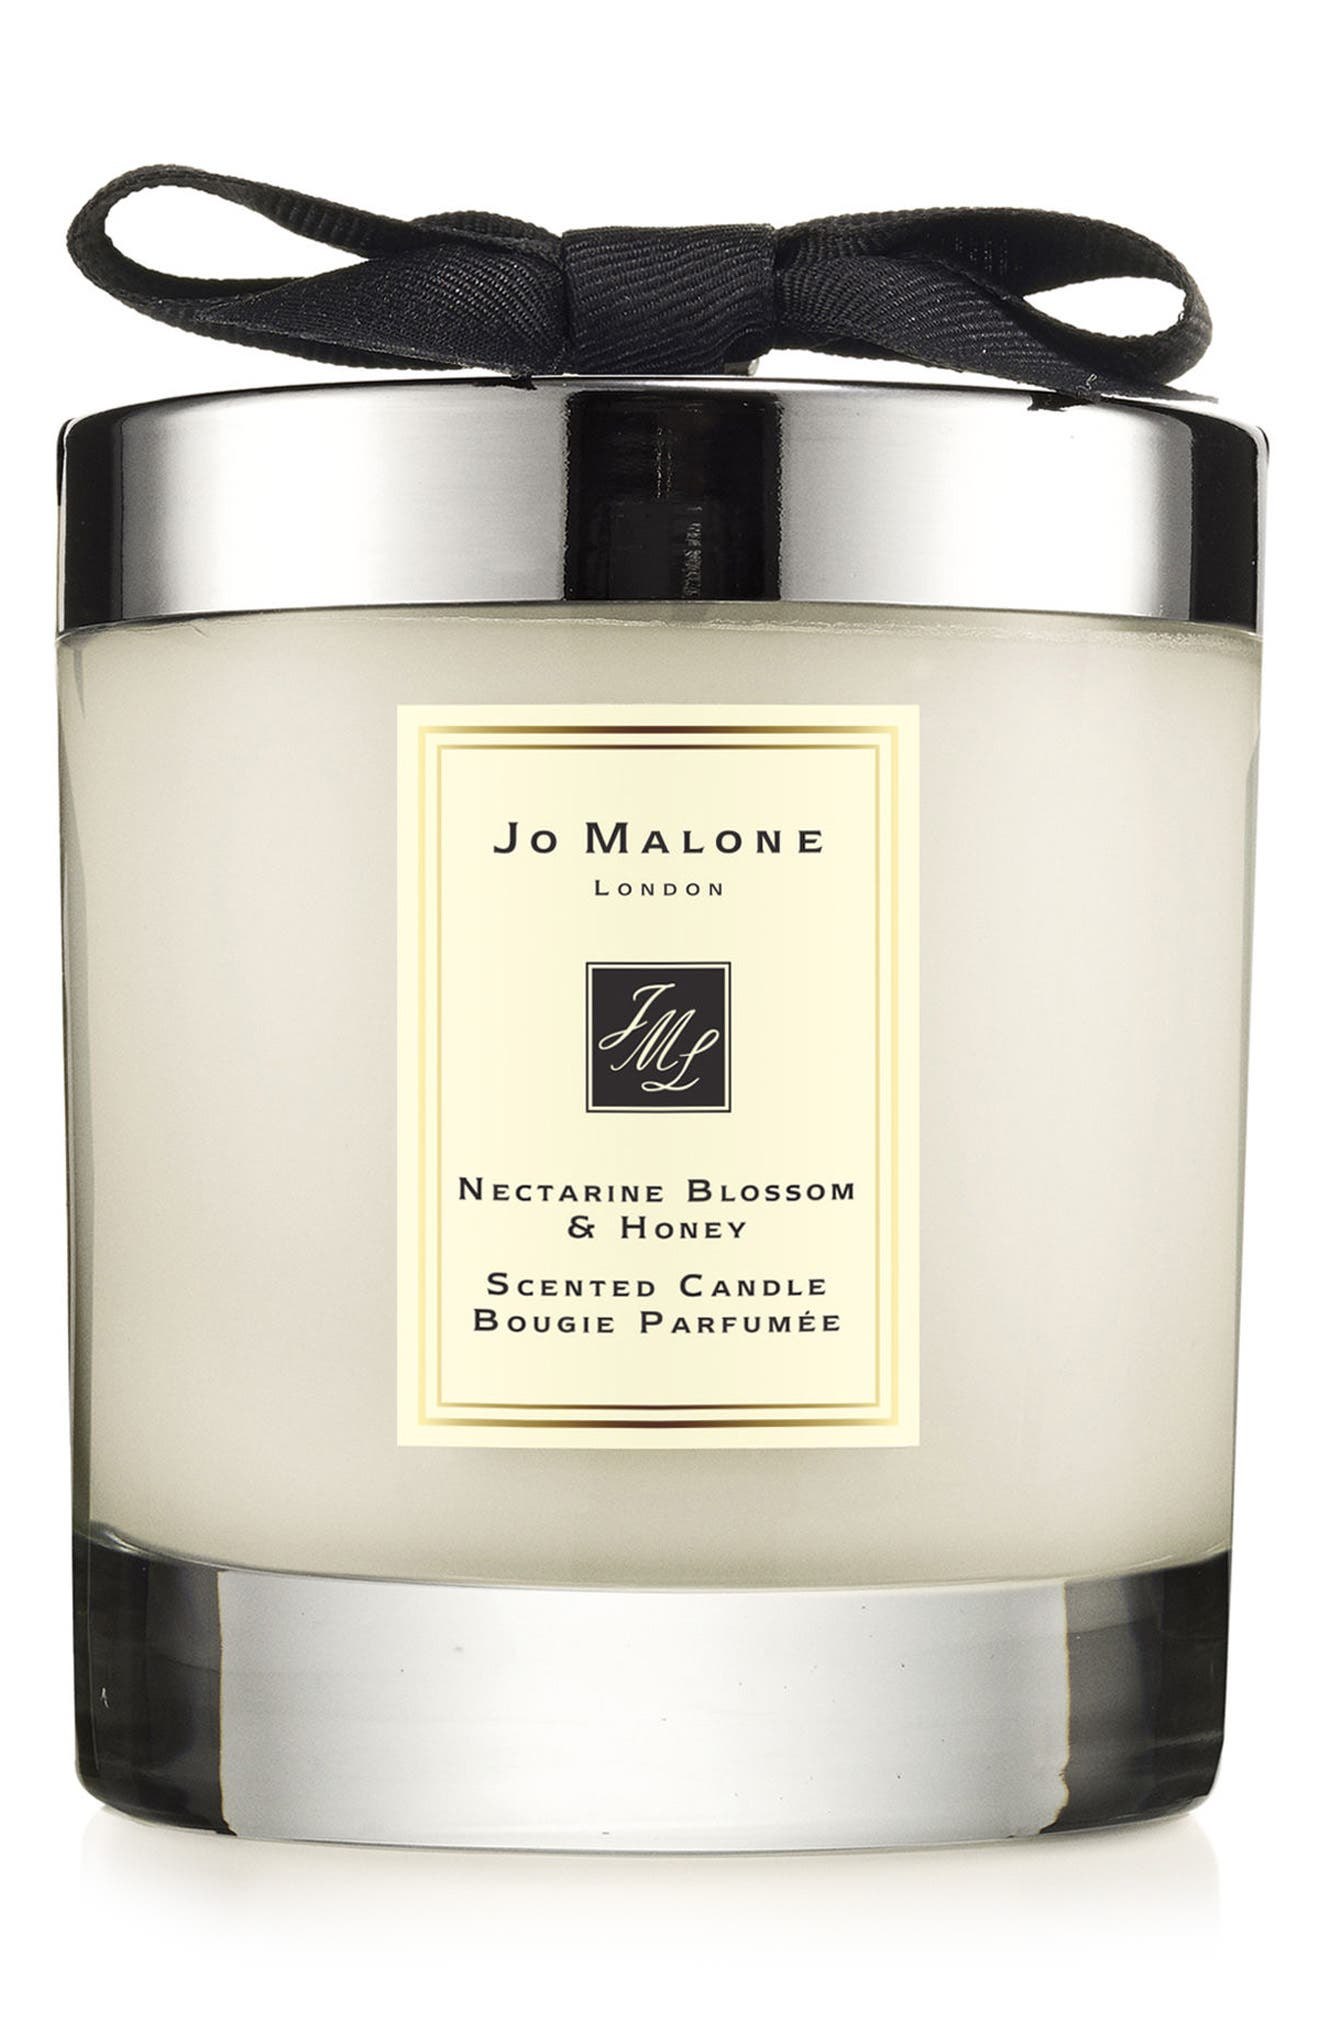 Jo Malone™ Nectarine Blossom & Honey Scented Home Candle